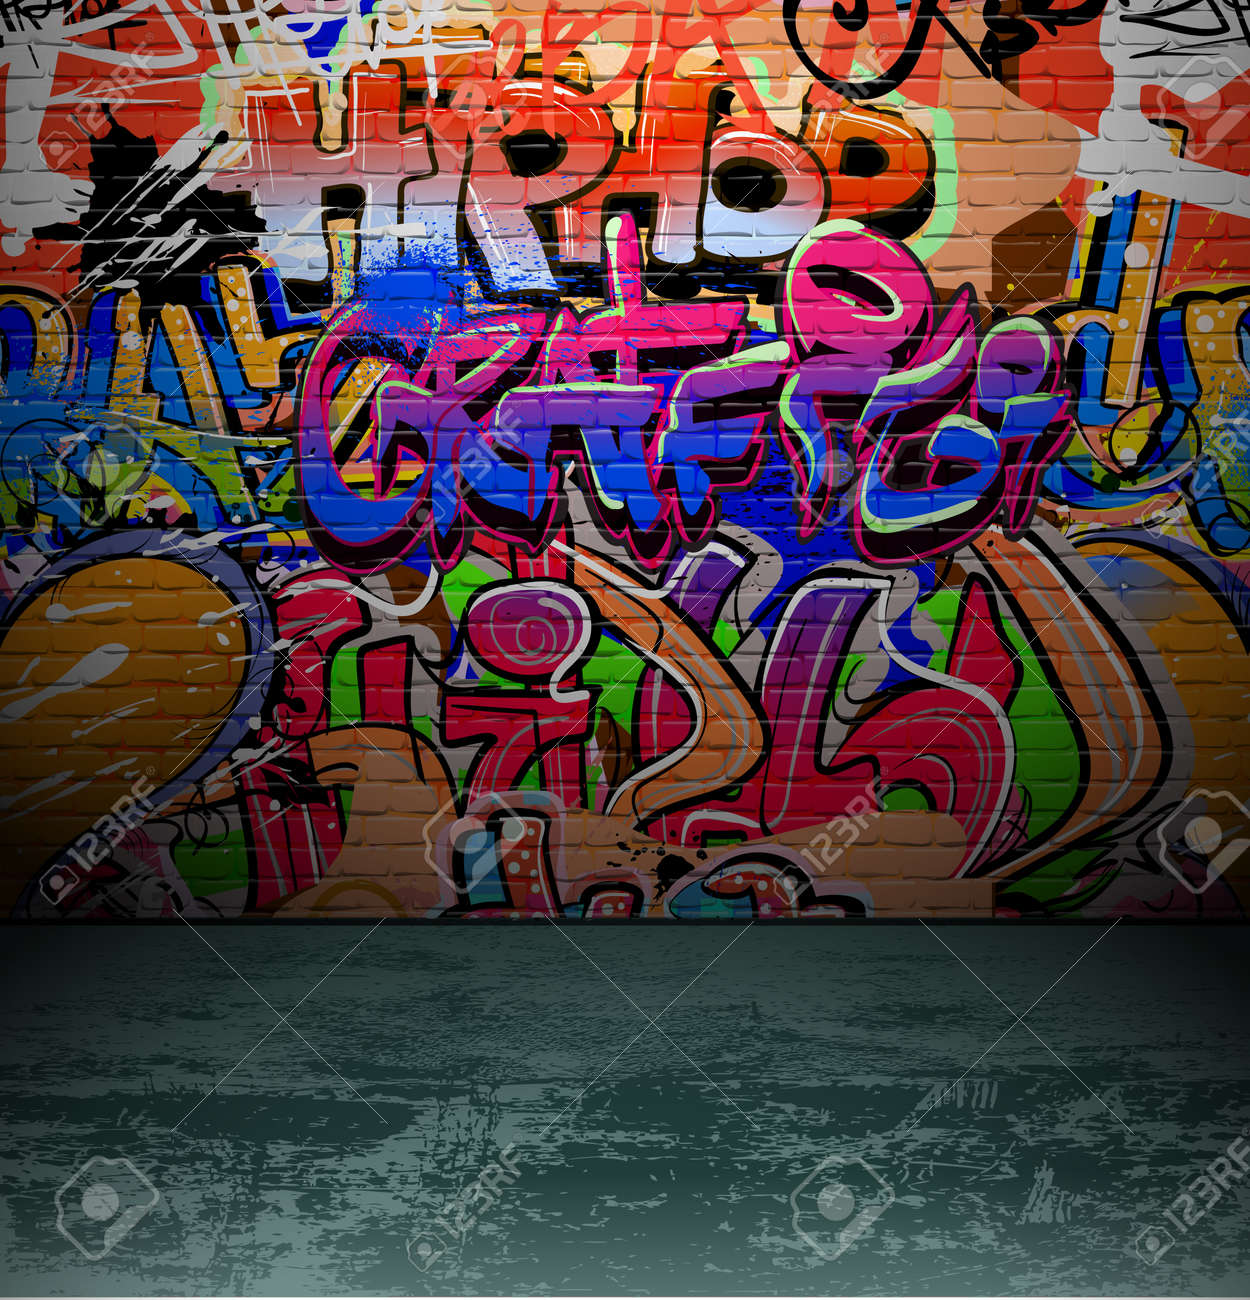 Grafitti wall background - Graffiti Wall Background Urban Street Grunge Art Vector Design Stock Vector 12486245